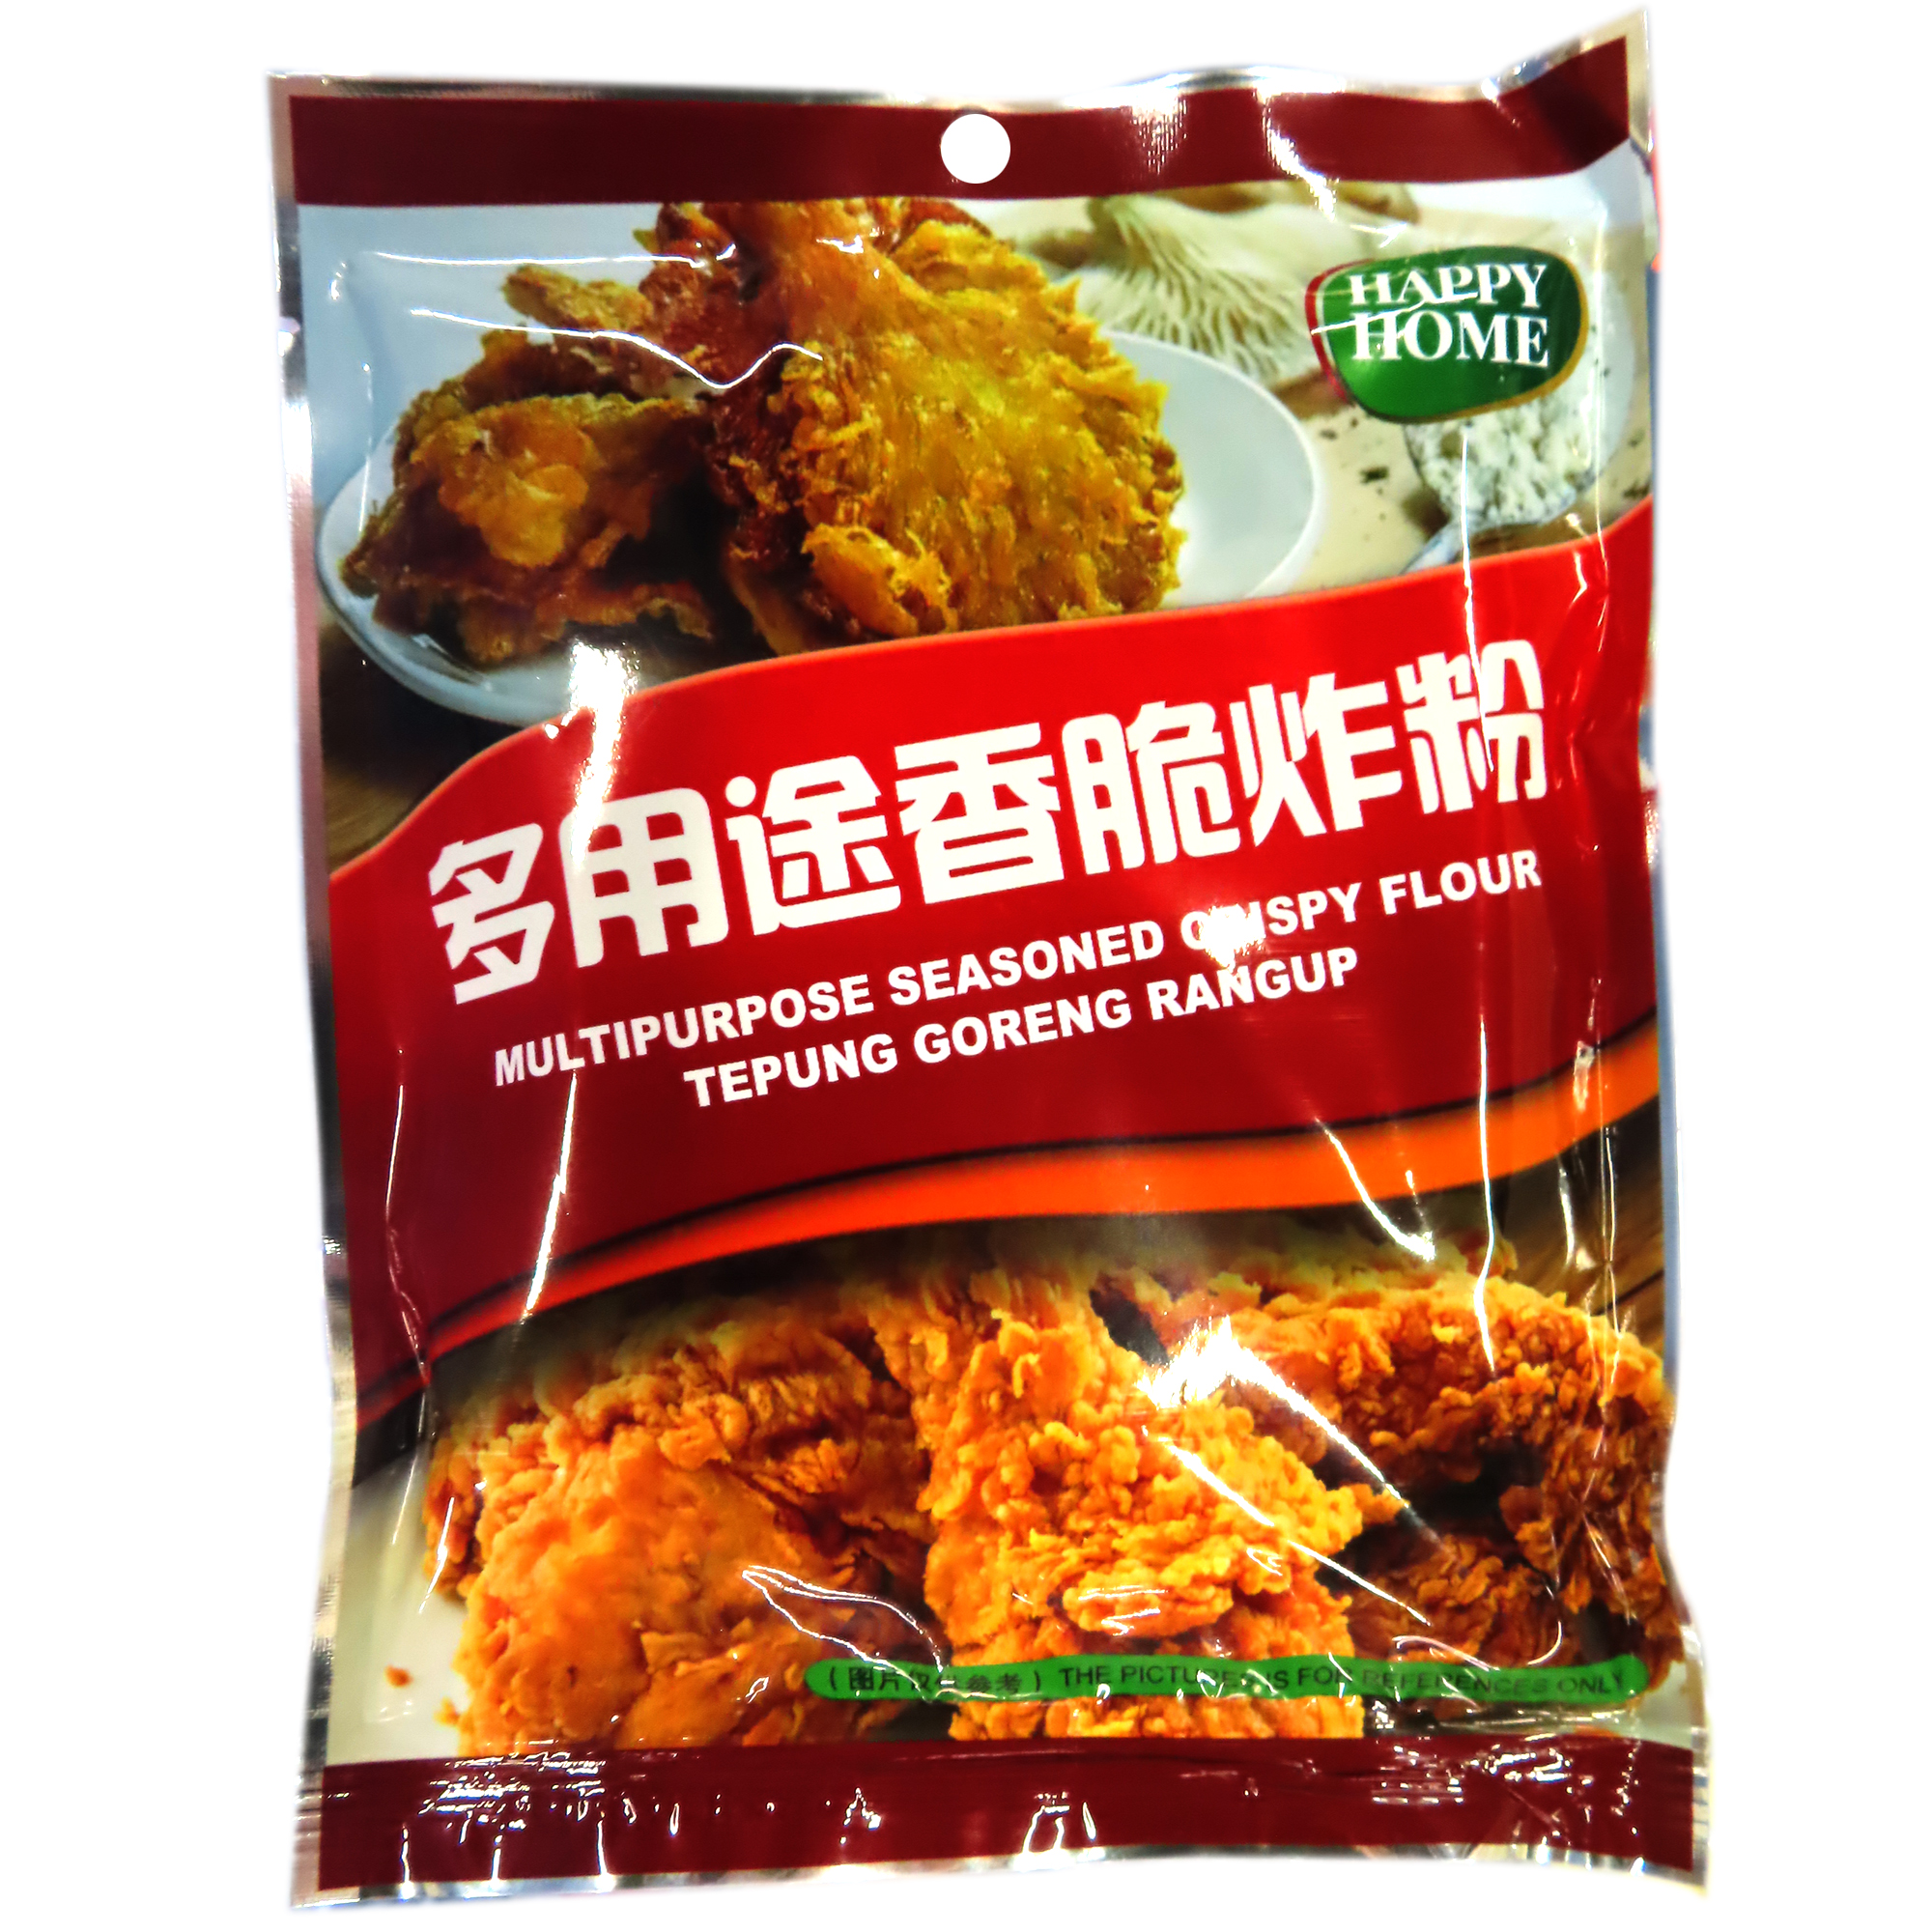 Image Happy Home Multipurpose Seasoned Crispy Flour 多种用途香脆炸粉 200grams